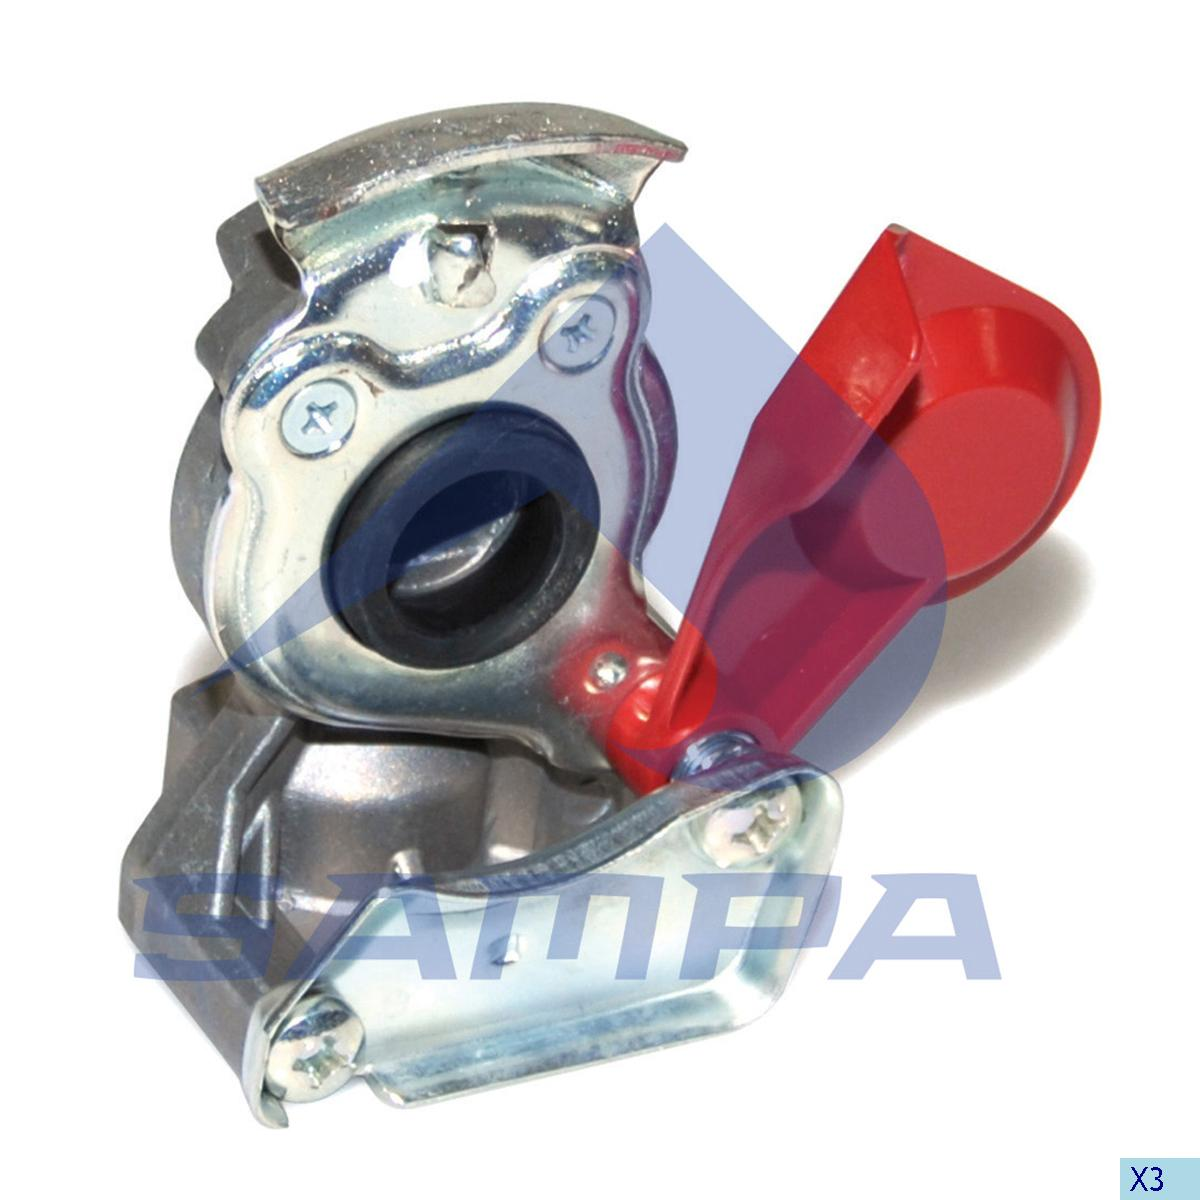 Coupling, Daf, Compressed Air System